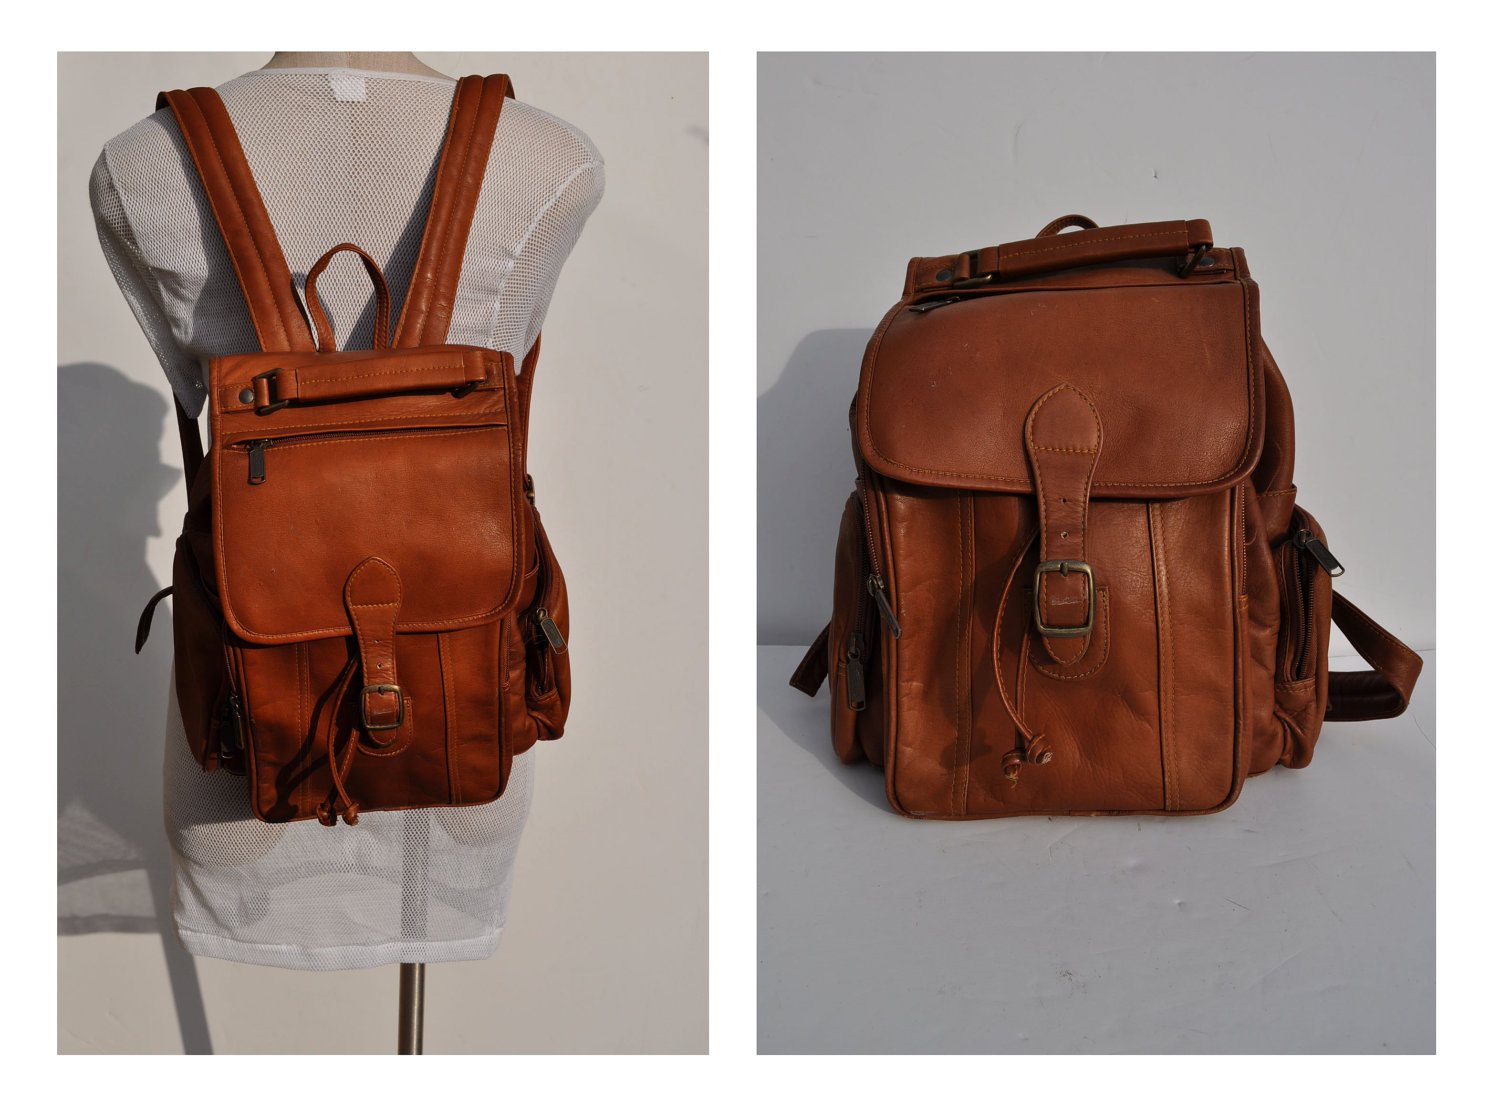 Vintage Leather Backpacks rz1Na4Pv